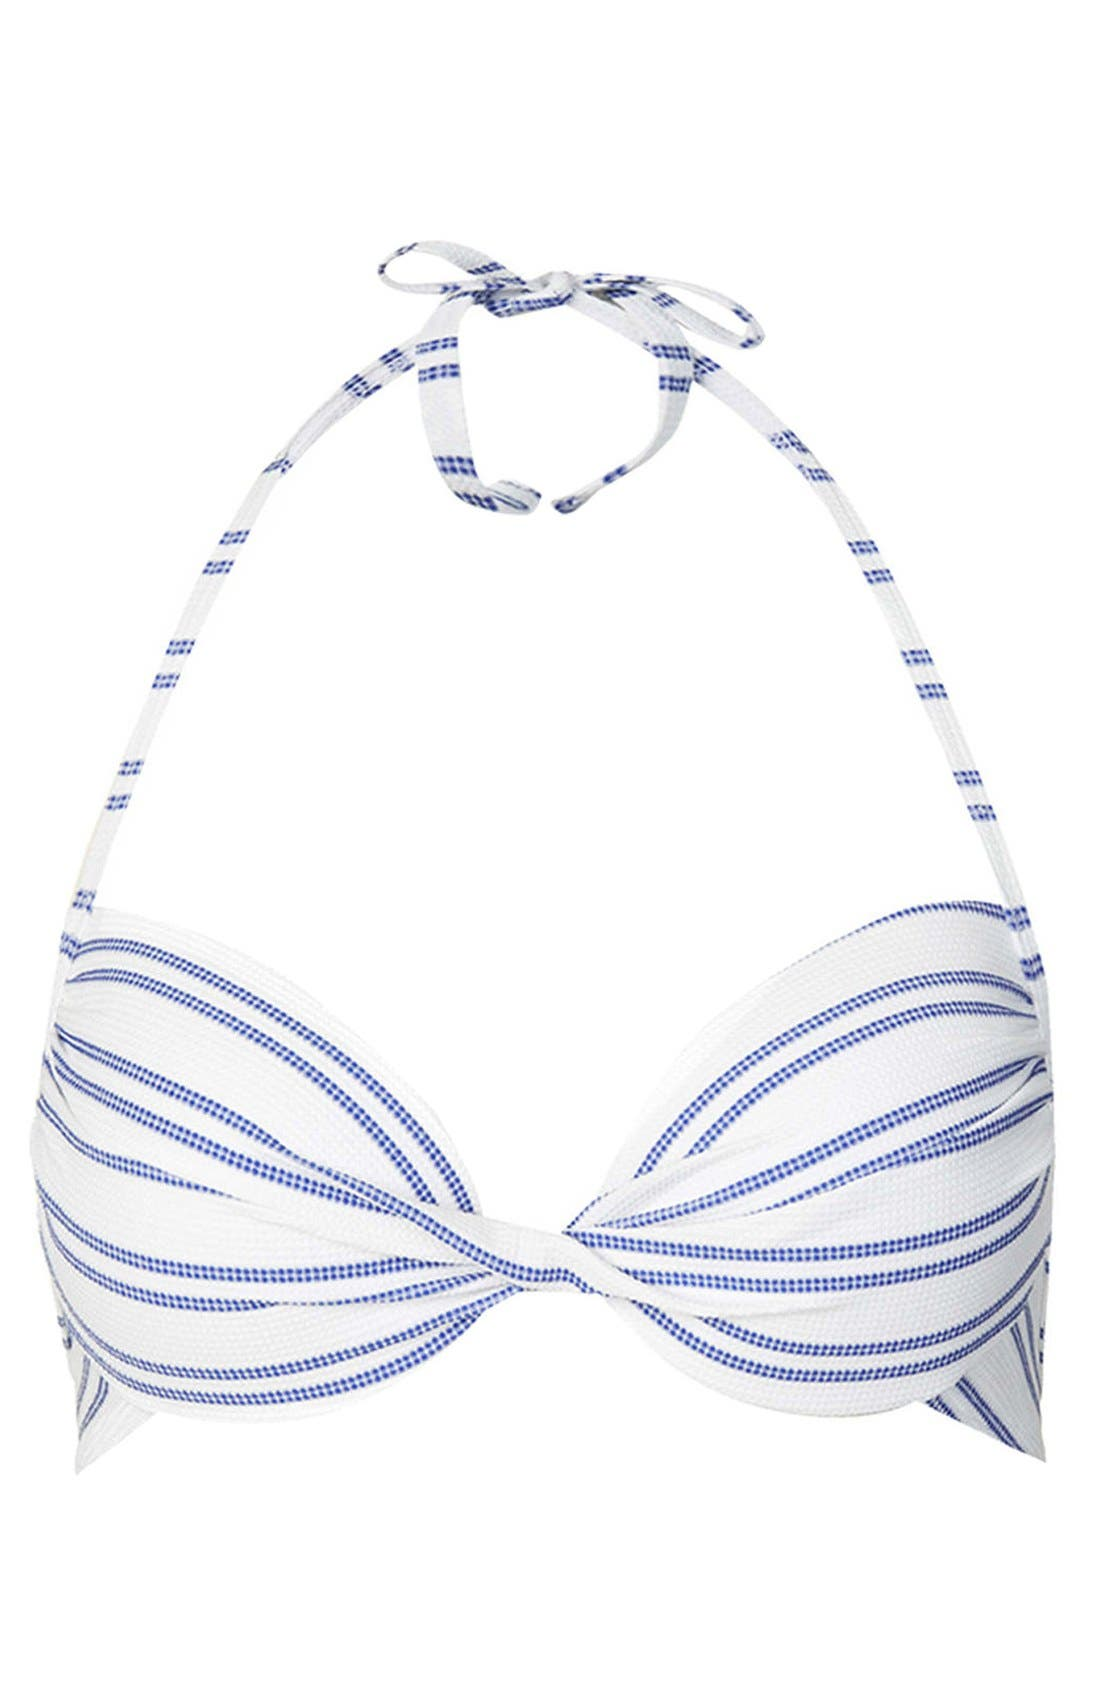 Alternate Image 1 Selected - Topshop Textured Stripe Plunge Bikini Top